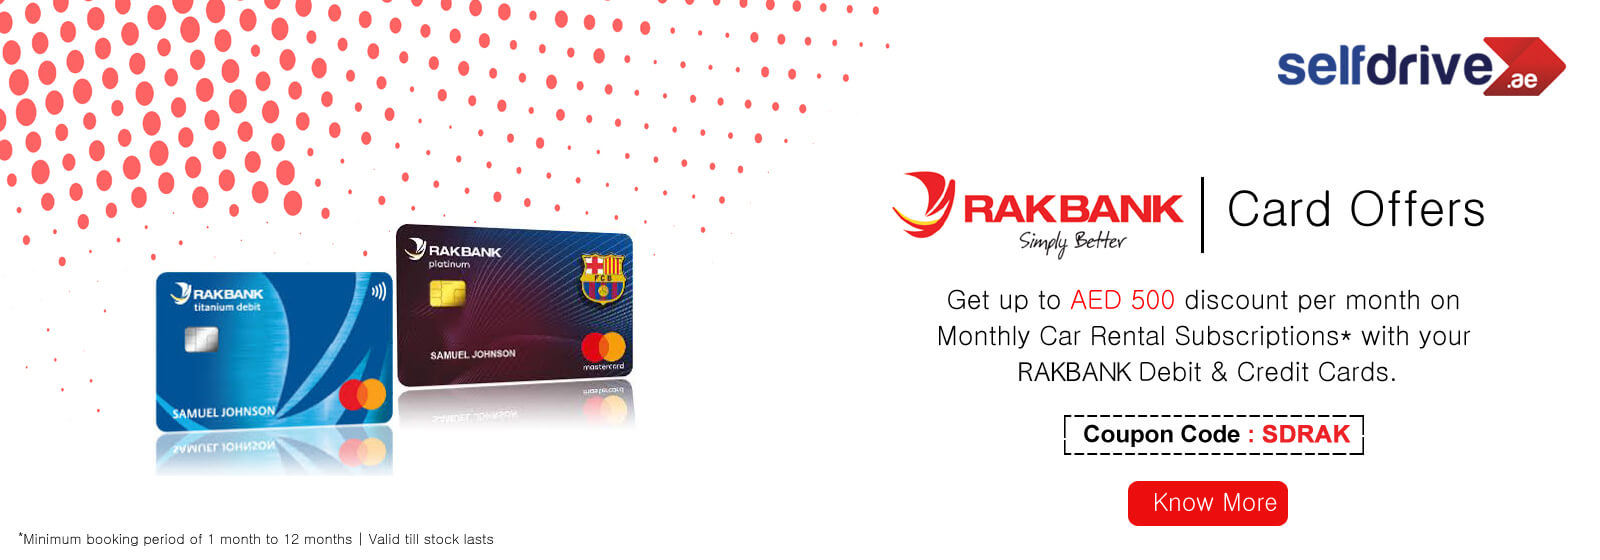 RAKBANK Card Offers